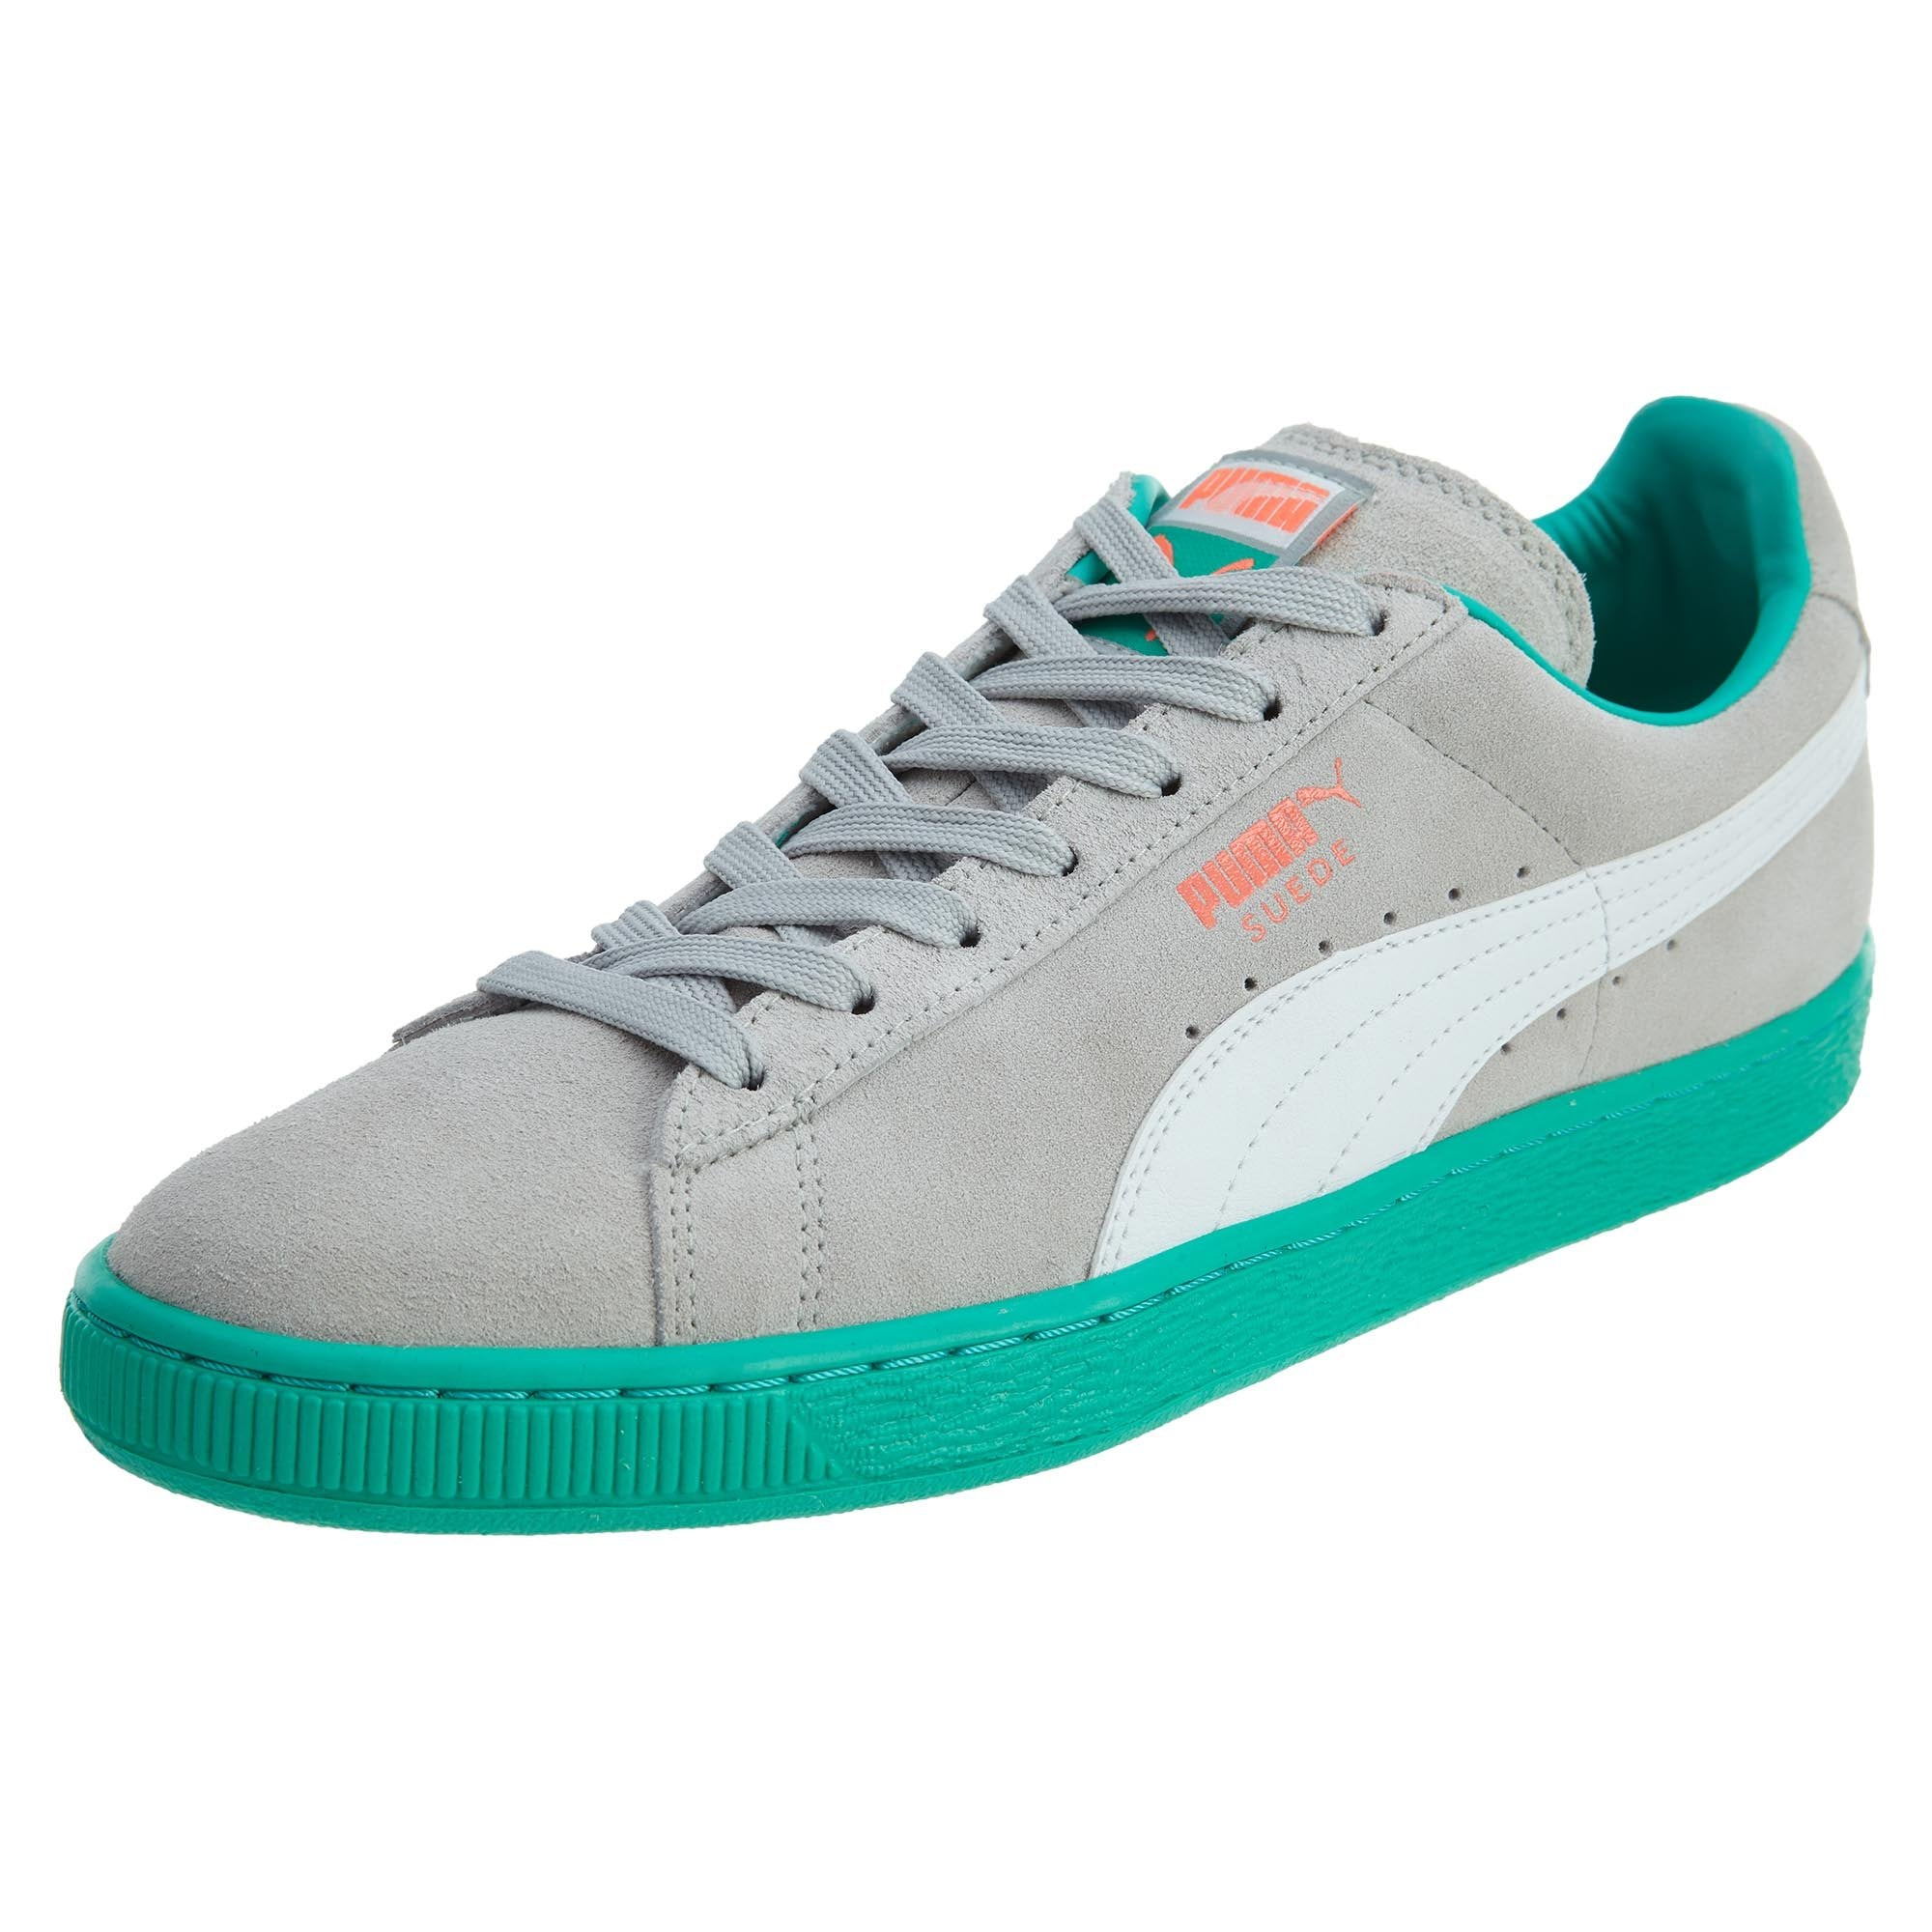 latest trends of 2019 first look newest style of Puma SUEDE CLASSIC+LFS Men's - GRAY VIOLET-WHITE-FLUO TEAL